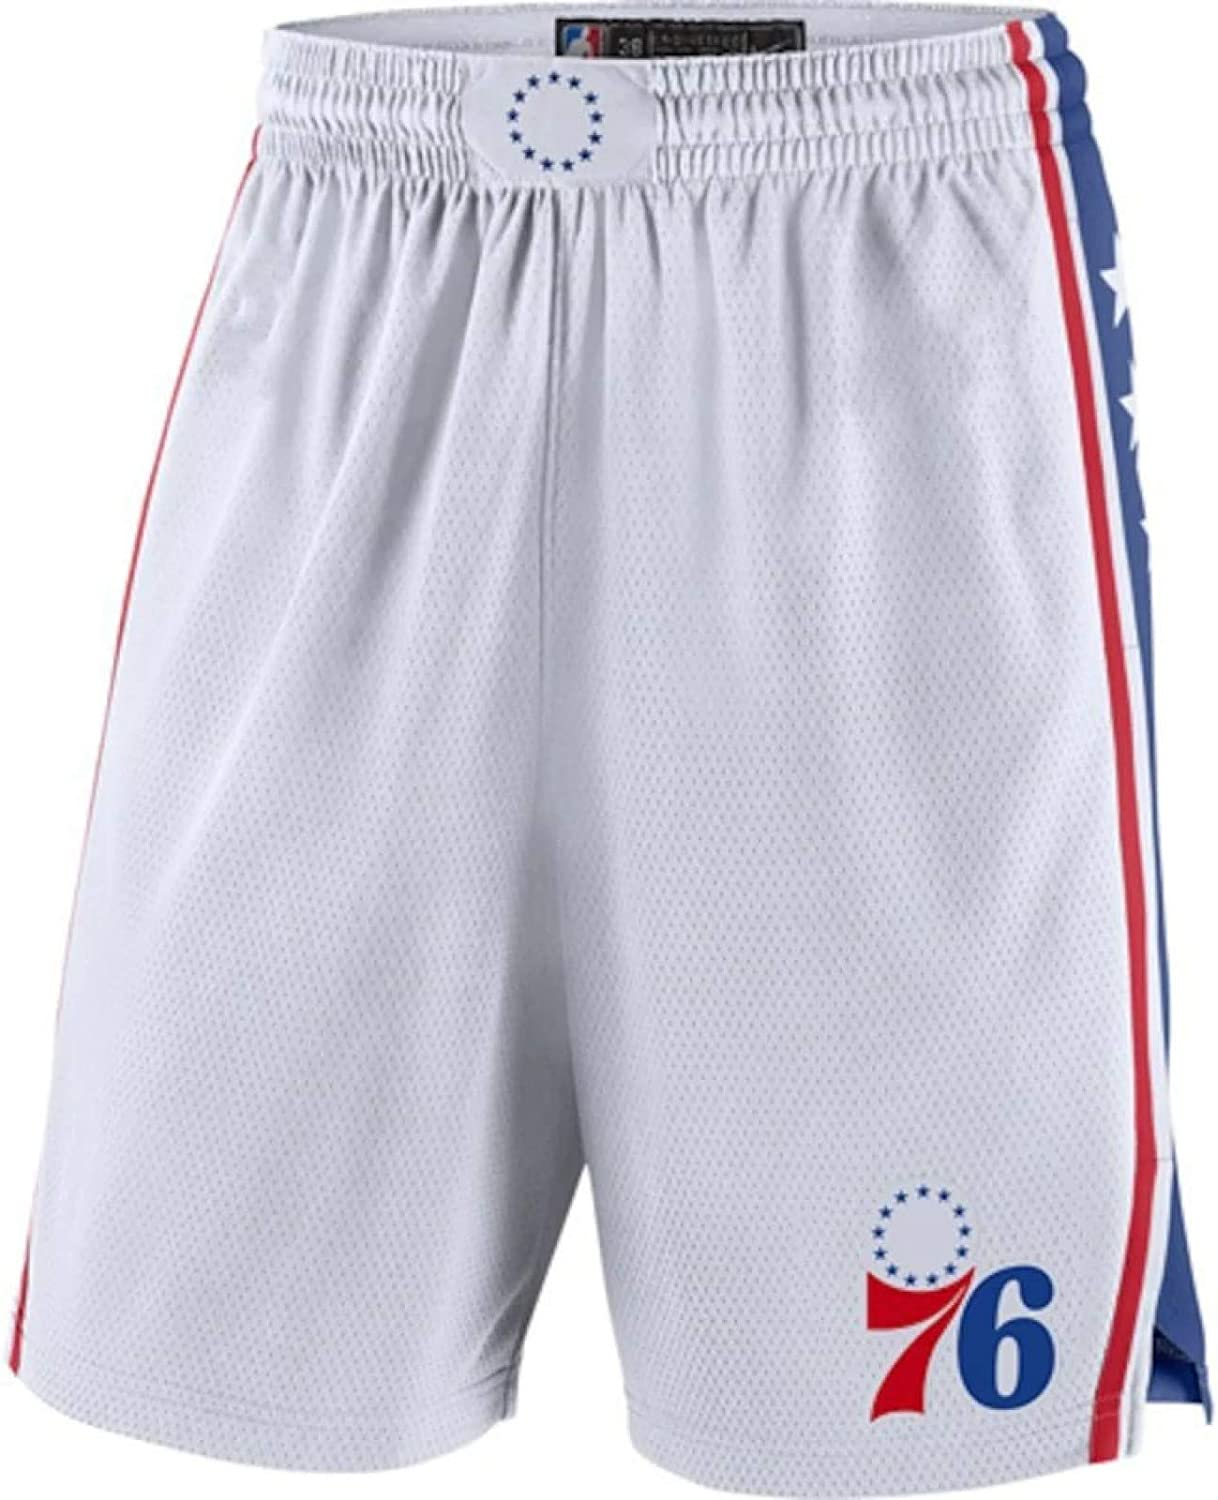 Popular shop is Louisville-Jefferson County Mall the lowest price challenge HFDH Men's Jersey Shorts 76ers Basketball Mesh S Training